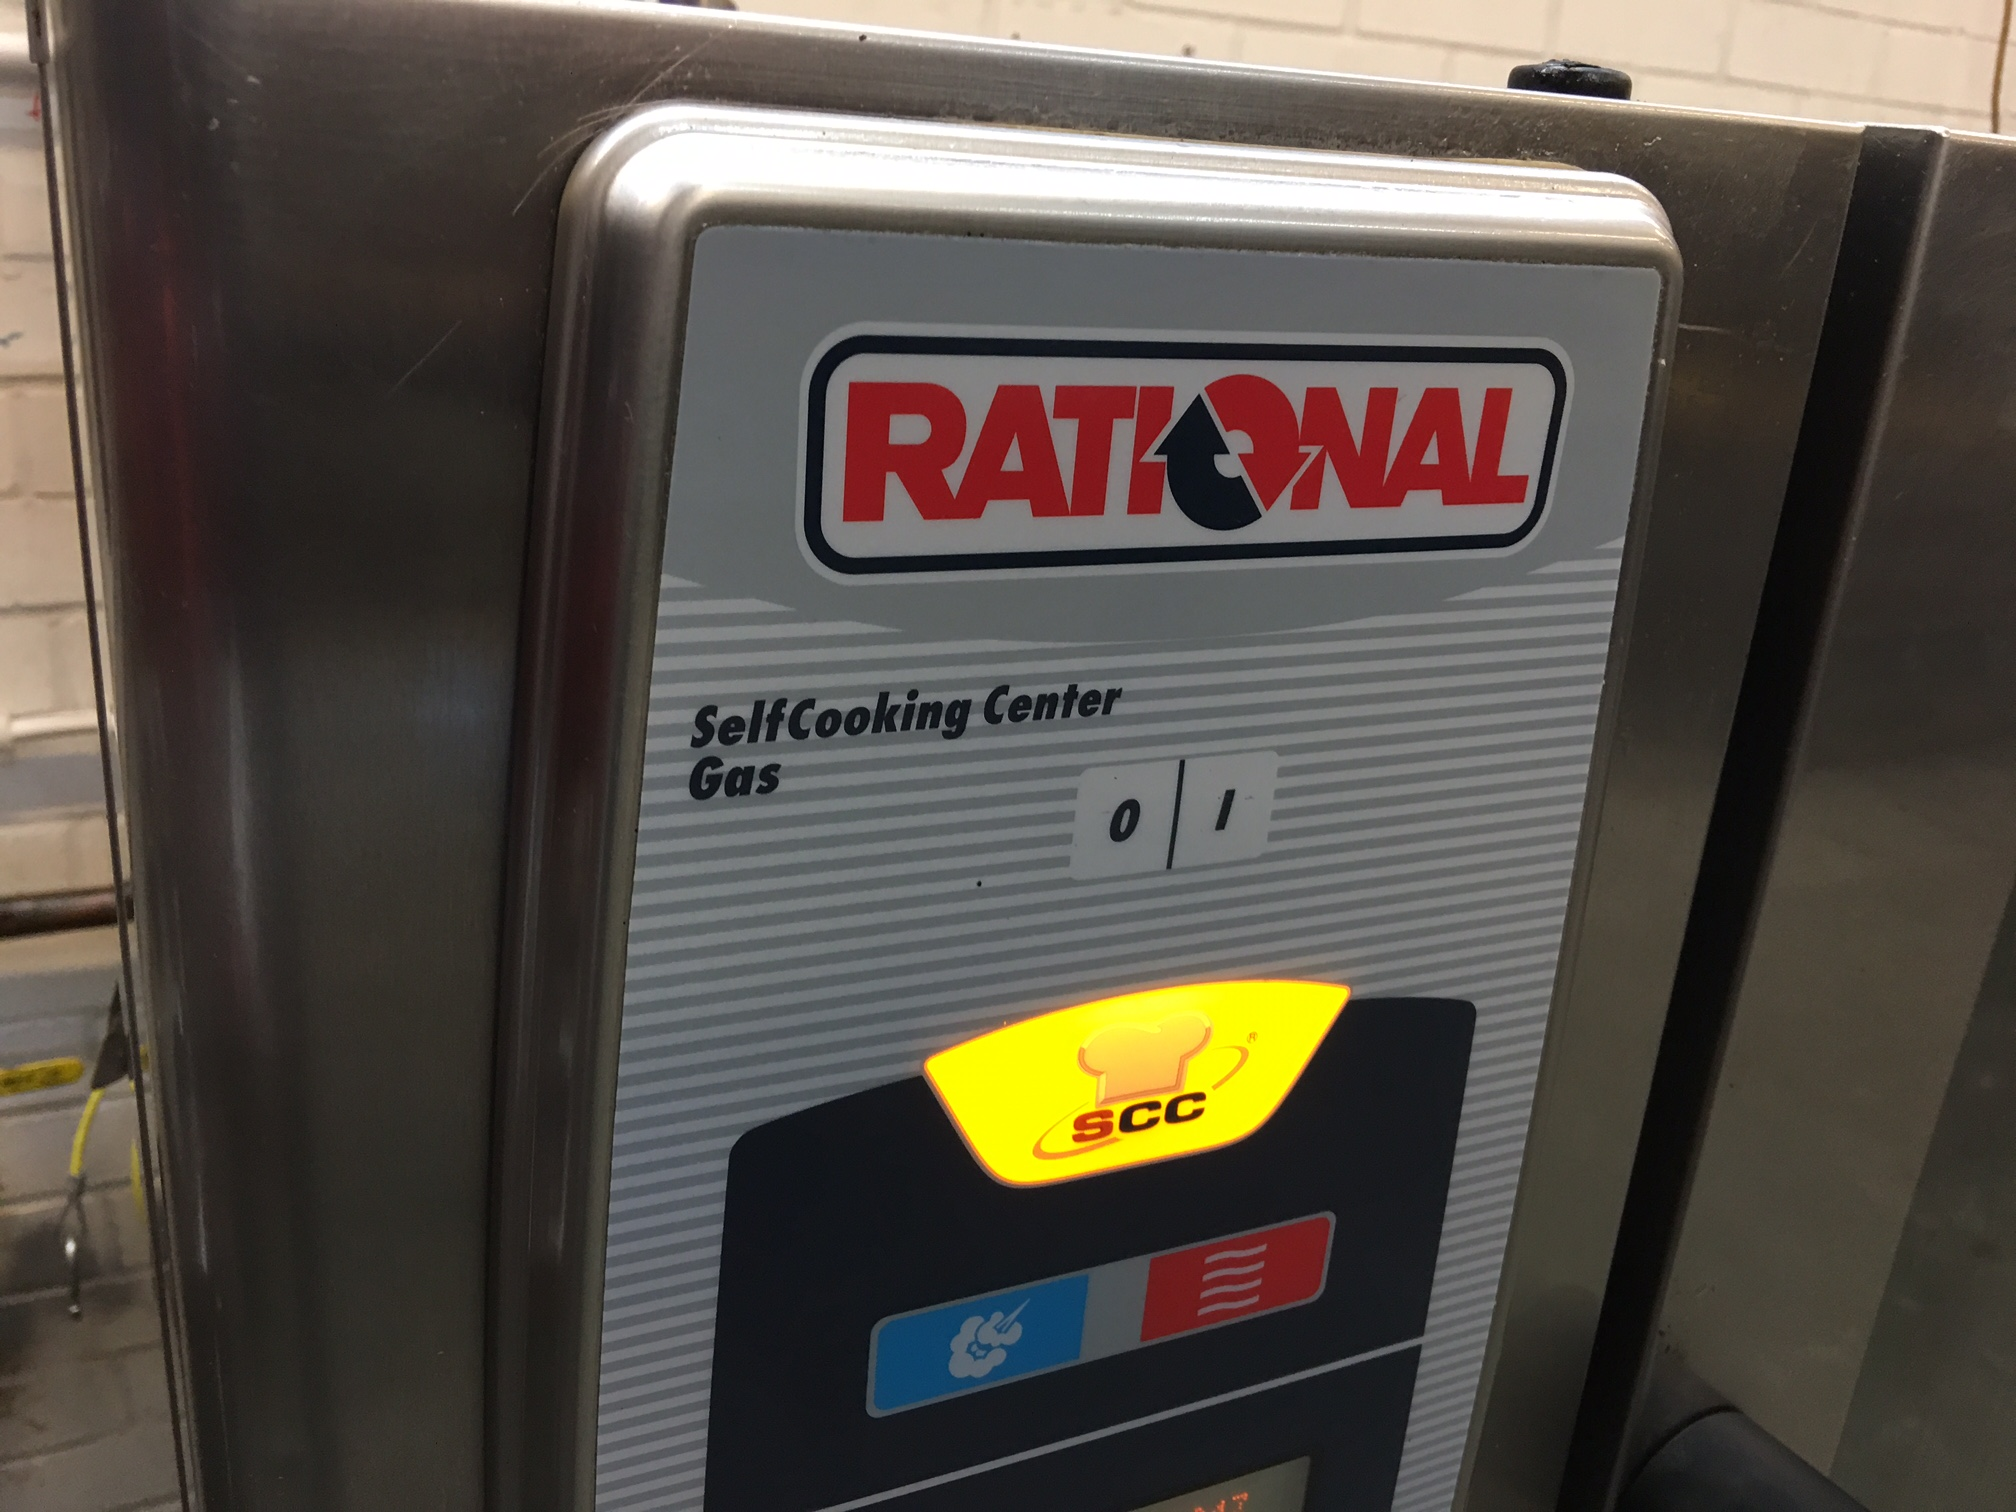 Rational SCC101G Gas Combi Oven , fully serviced with new fan motor, 70 rational ovens in stock